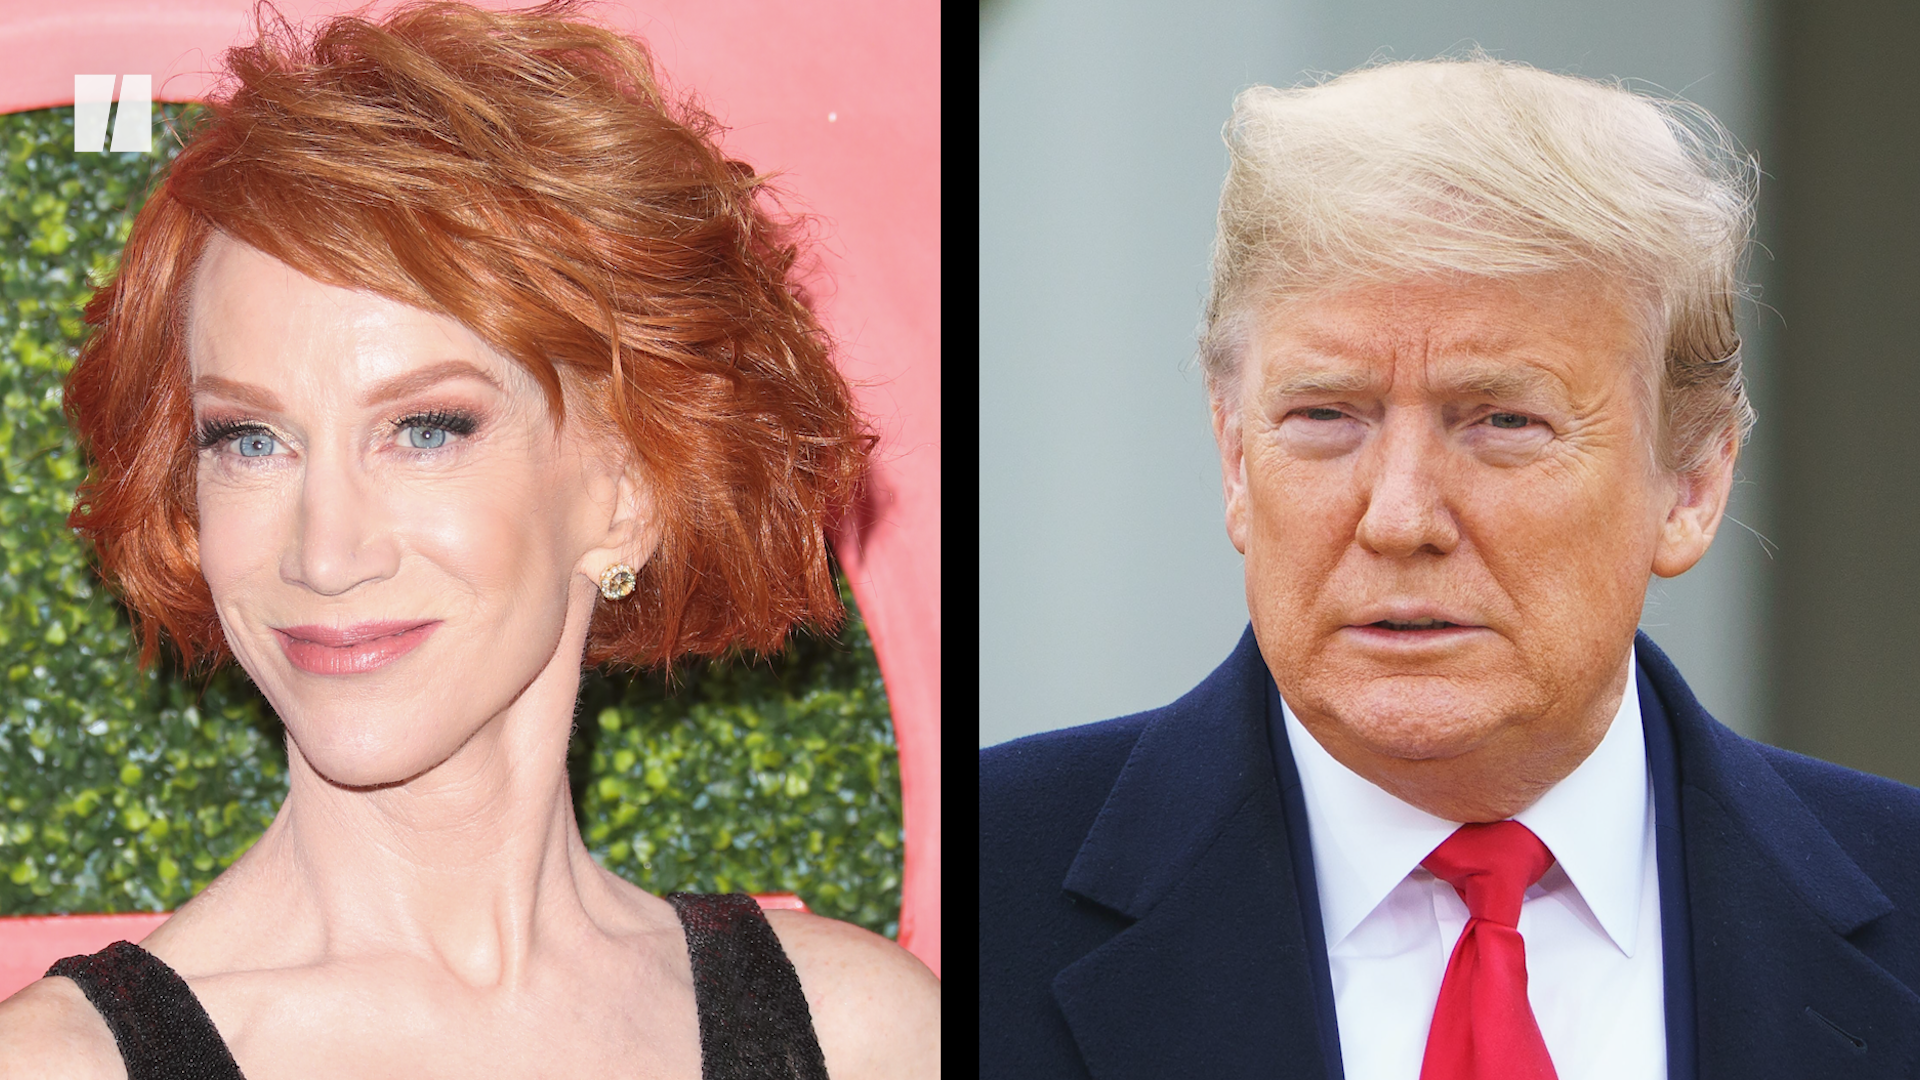 Kathy Griffin Sparks Anger With Tweet About Injecting Donald Trump With Air